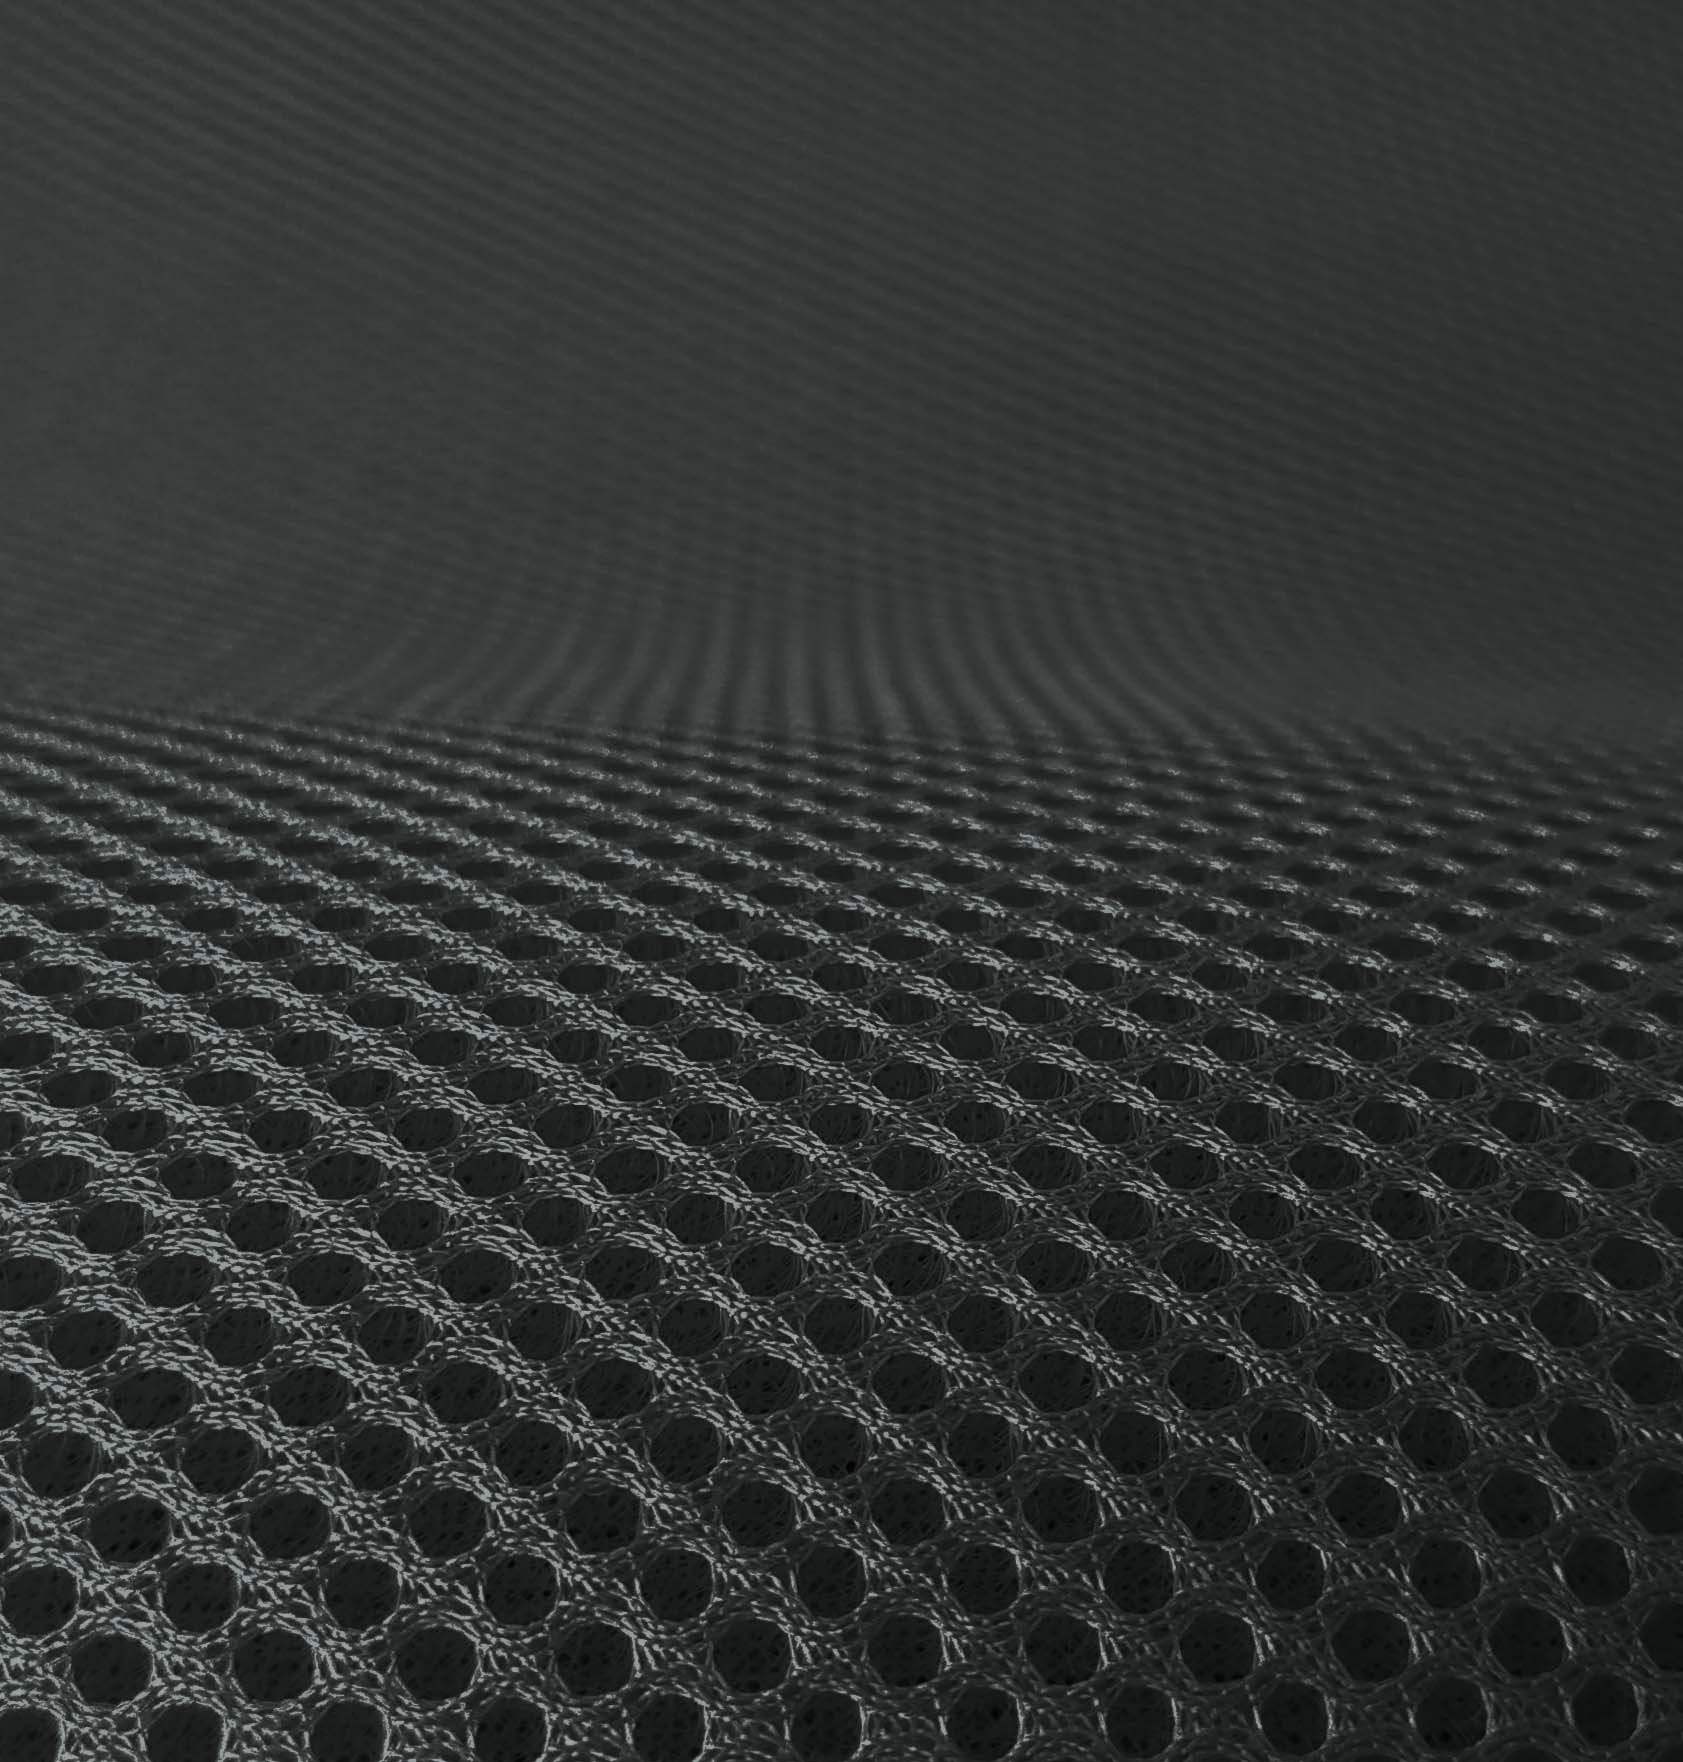 Lasagroom Air Mesh Fabric Darkgrey Anthracite 4mm